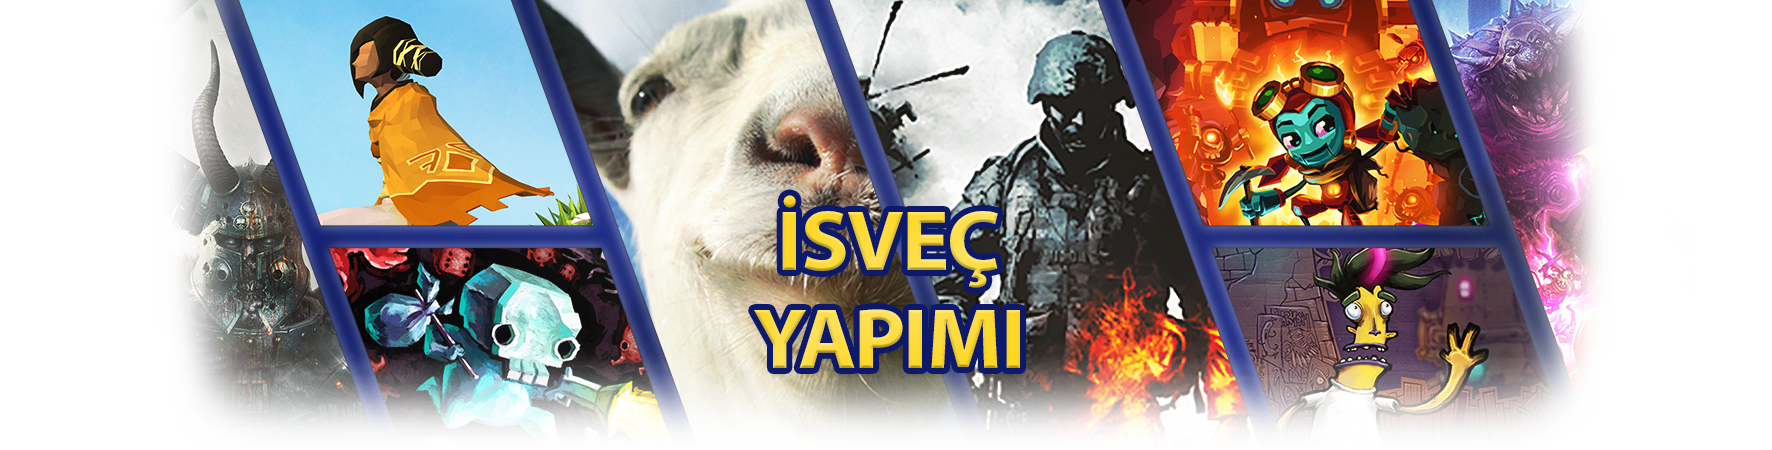 https://steamcdn-a.akamaihd.net/steam/clusters/sale_madeinsweden/5533c73848fe2a412860ce76/page_bg_turkish.png?t=1528142983